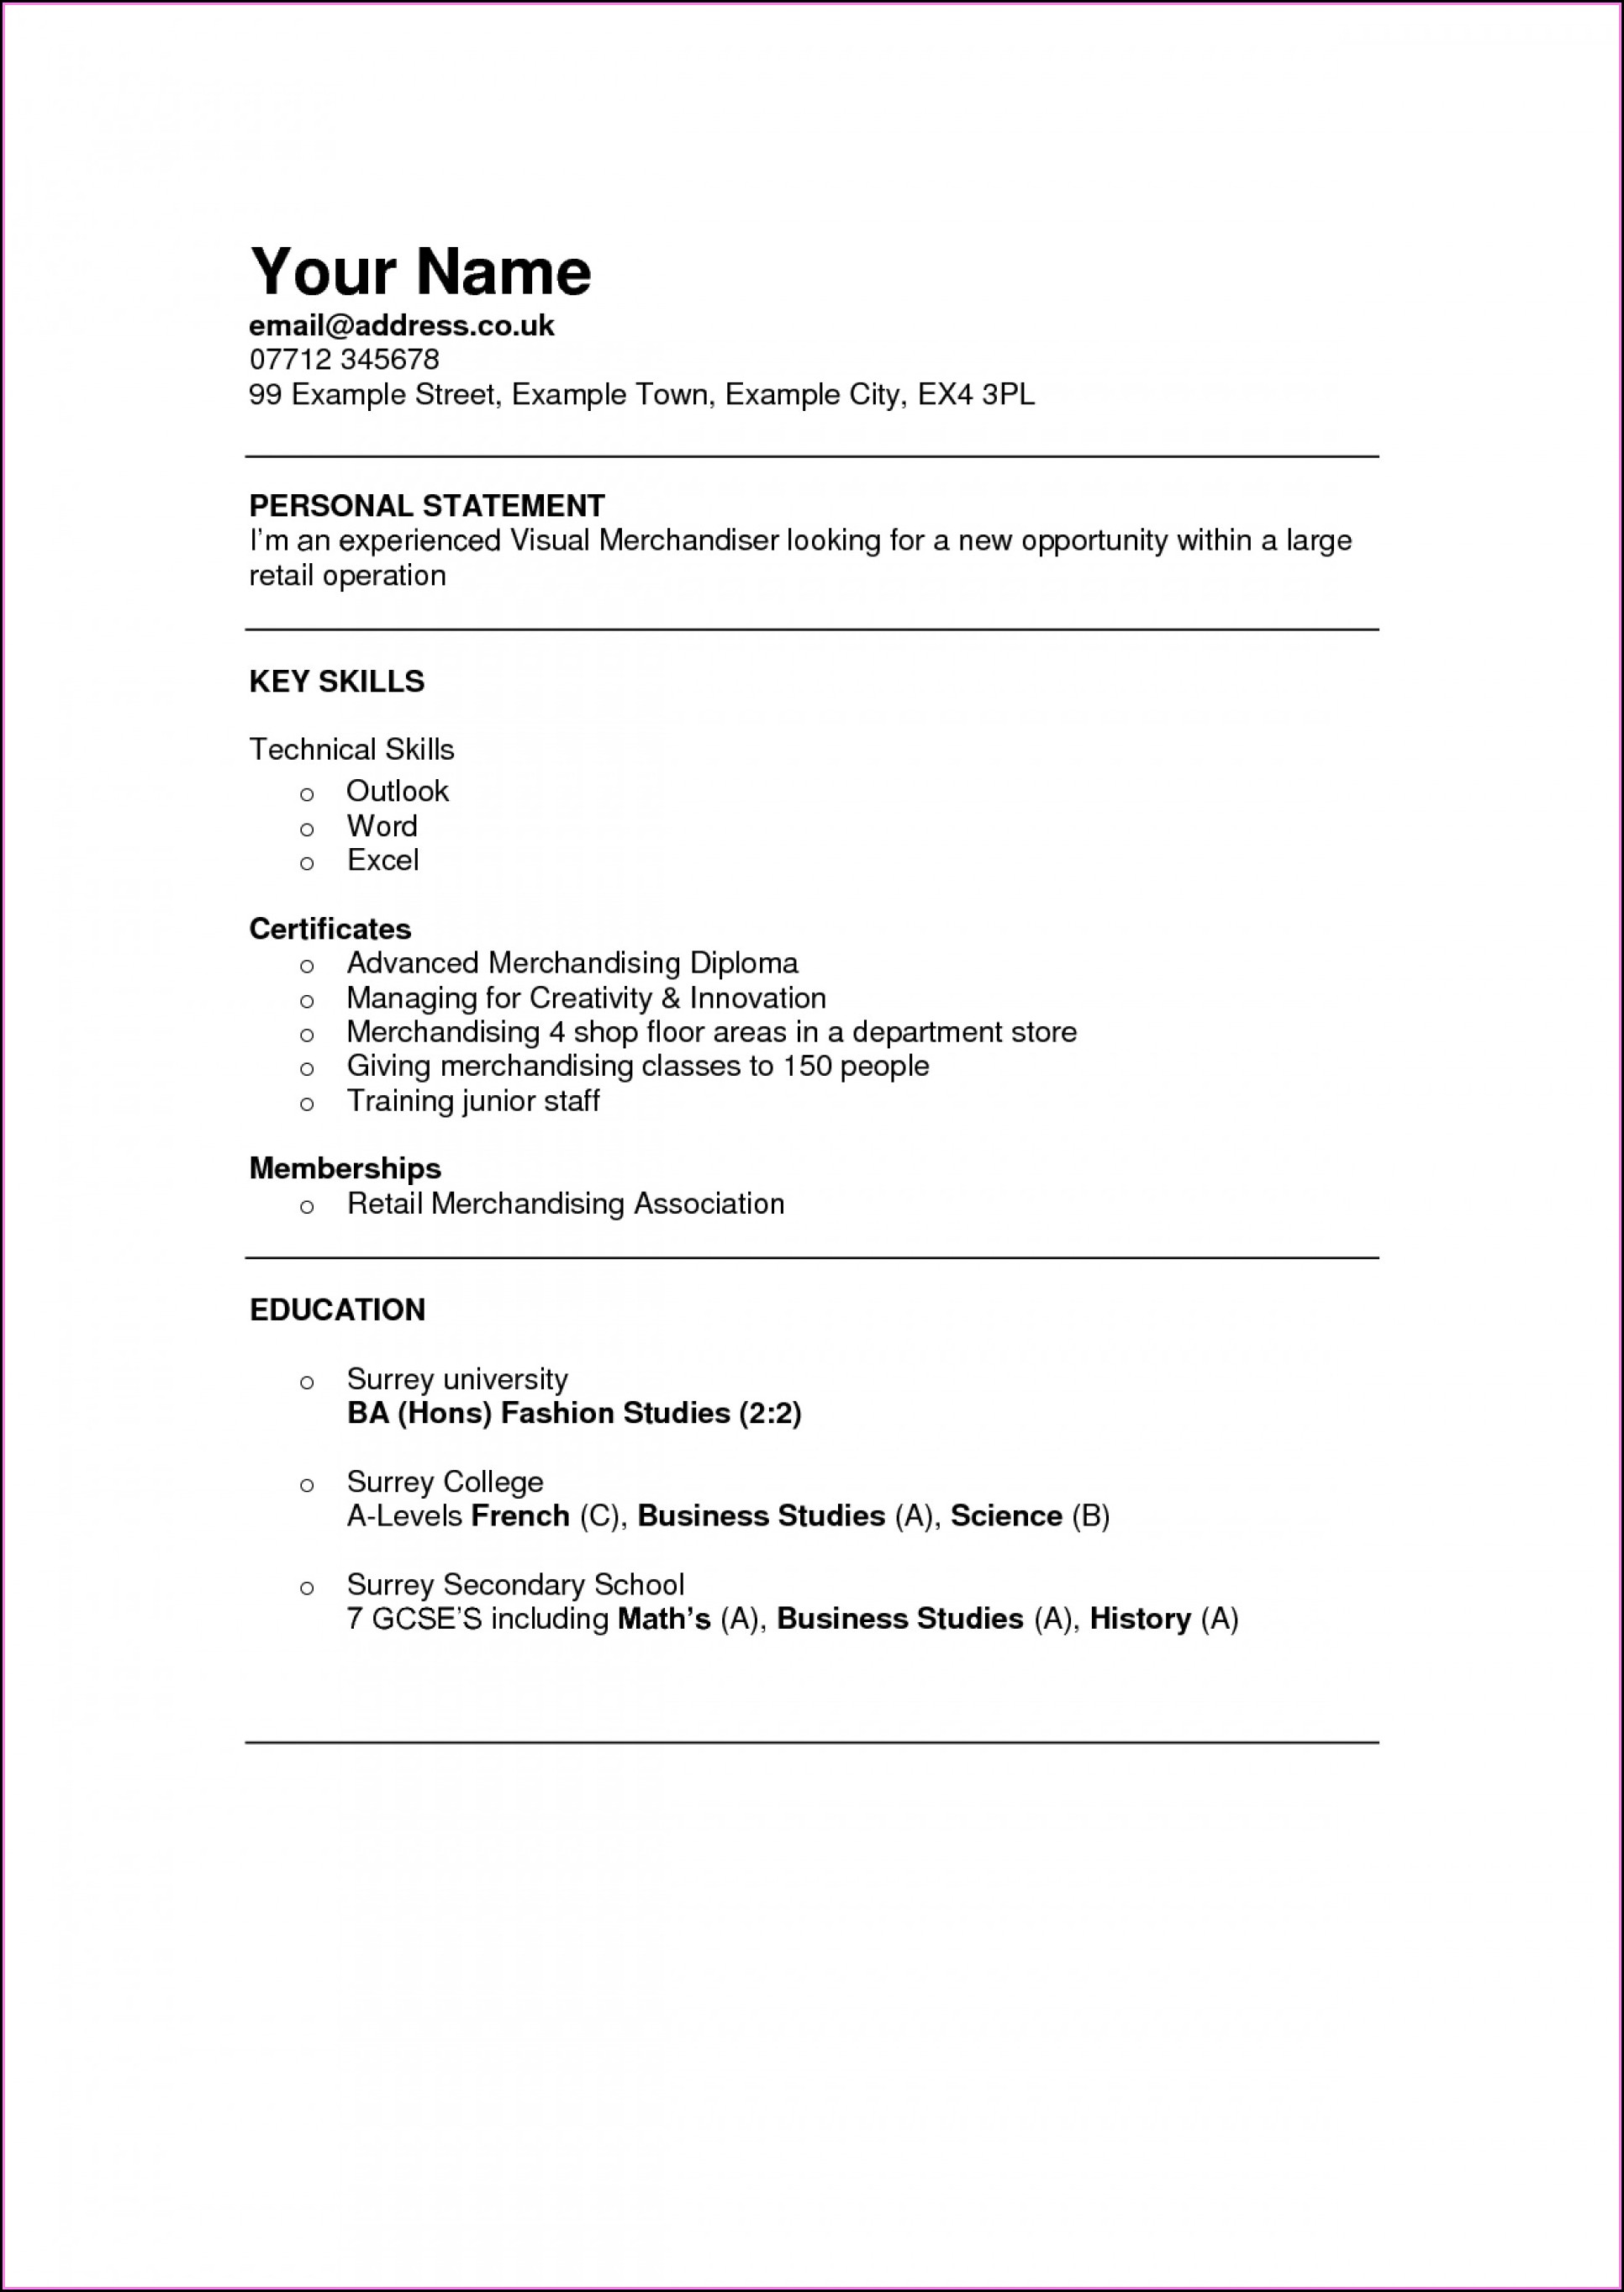 Attractive Resume Templates For Freshers Free Download